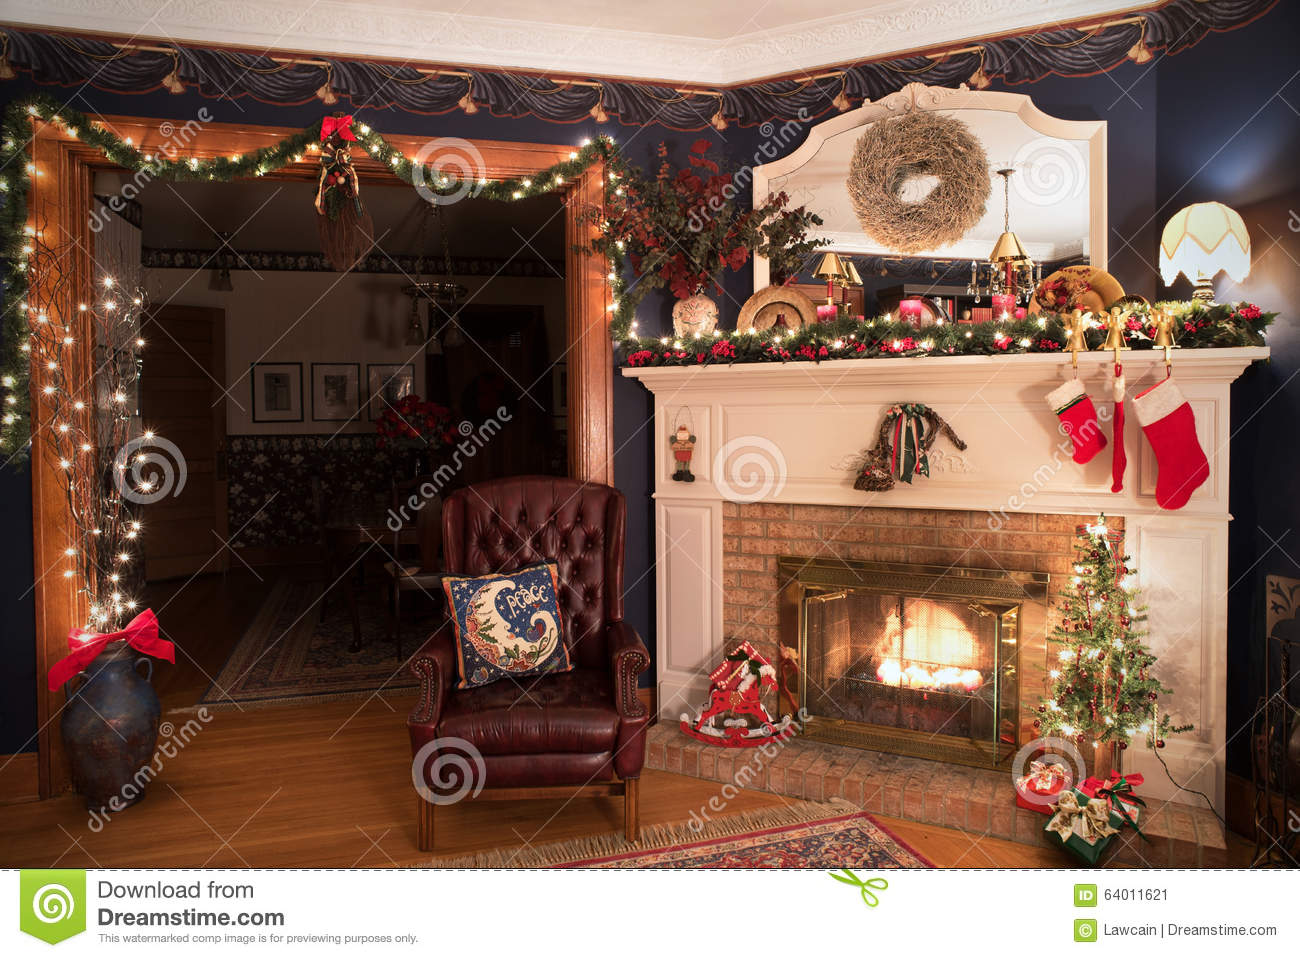 Of Living Rooms Decorated For Christmas Victorian Christmas Living Room Stock Photo Image 64011621